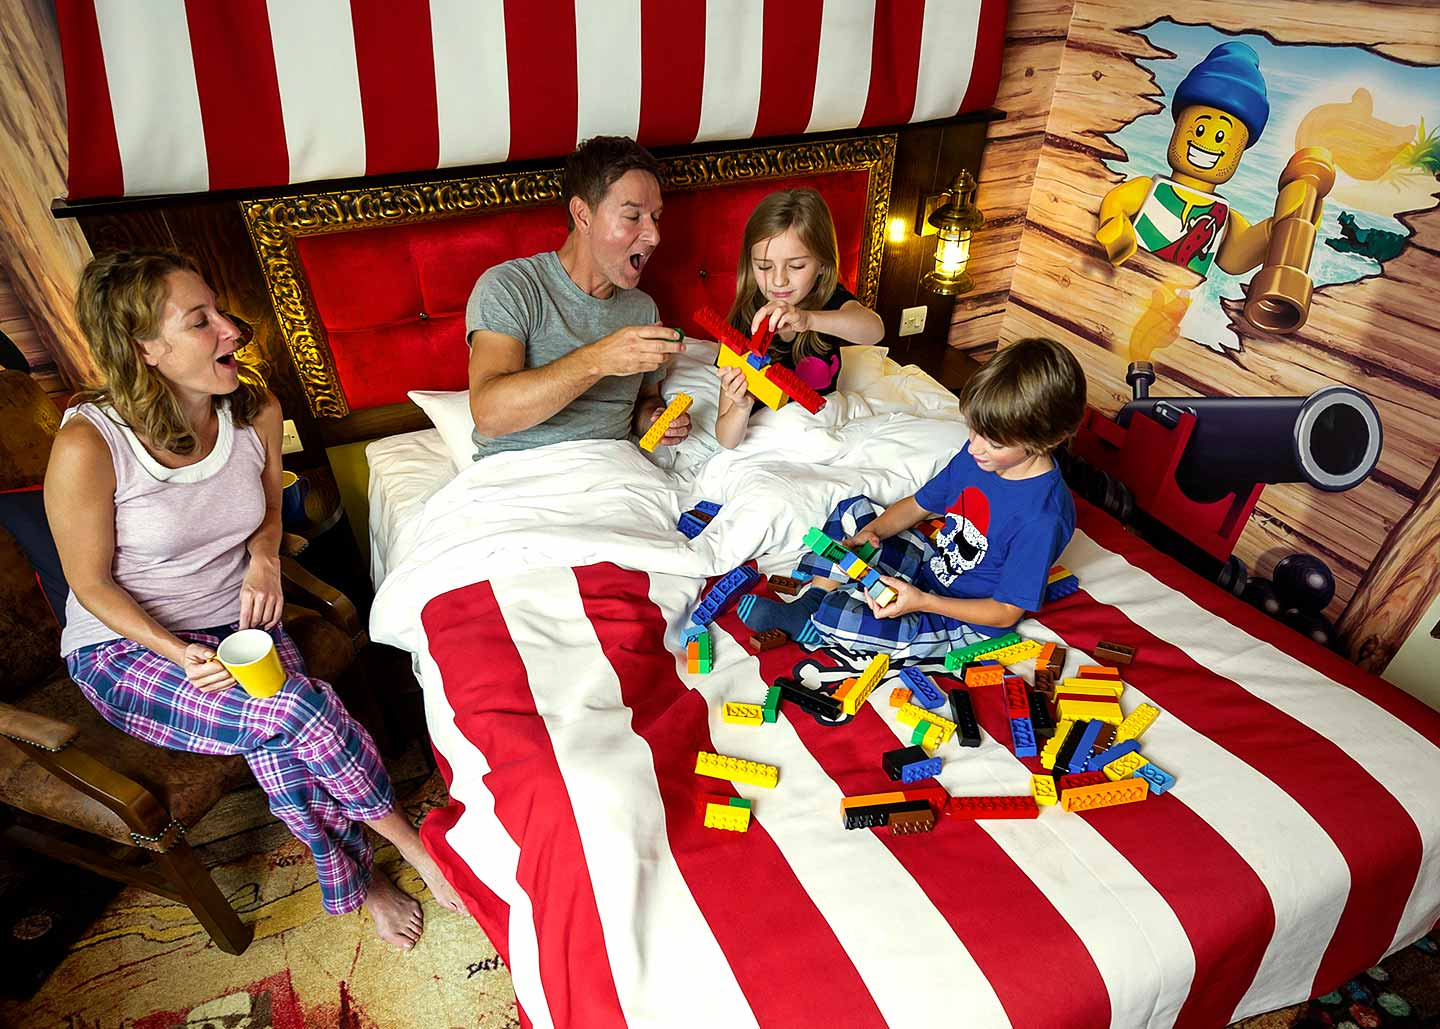 Resort Accommodation at Legoland Windsor